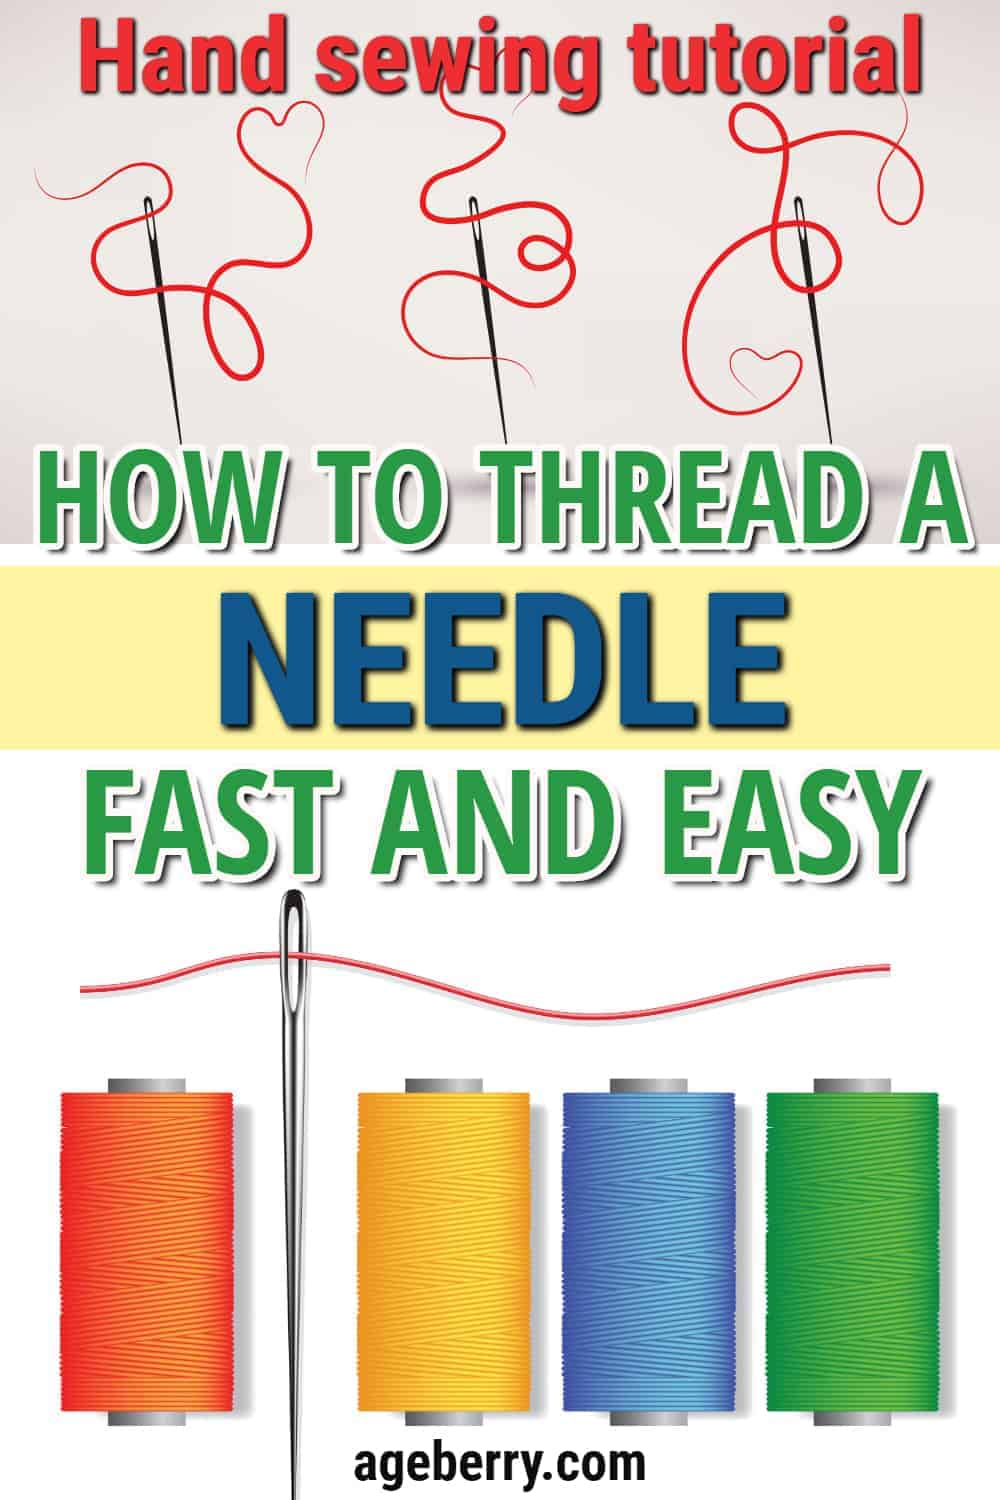 how to thread a needle fast and easy hand sewing tutorial